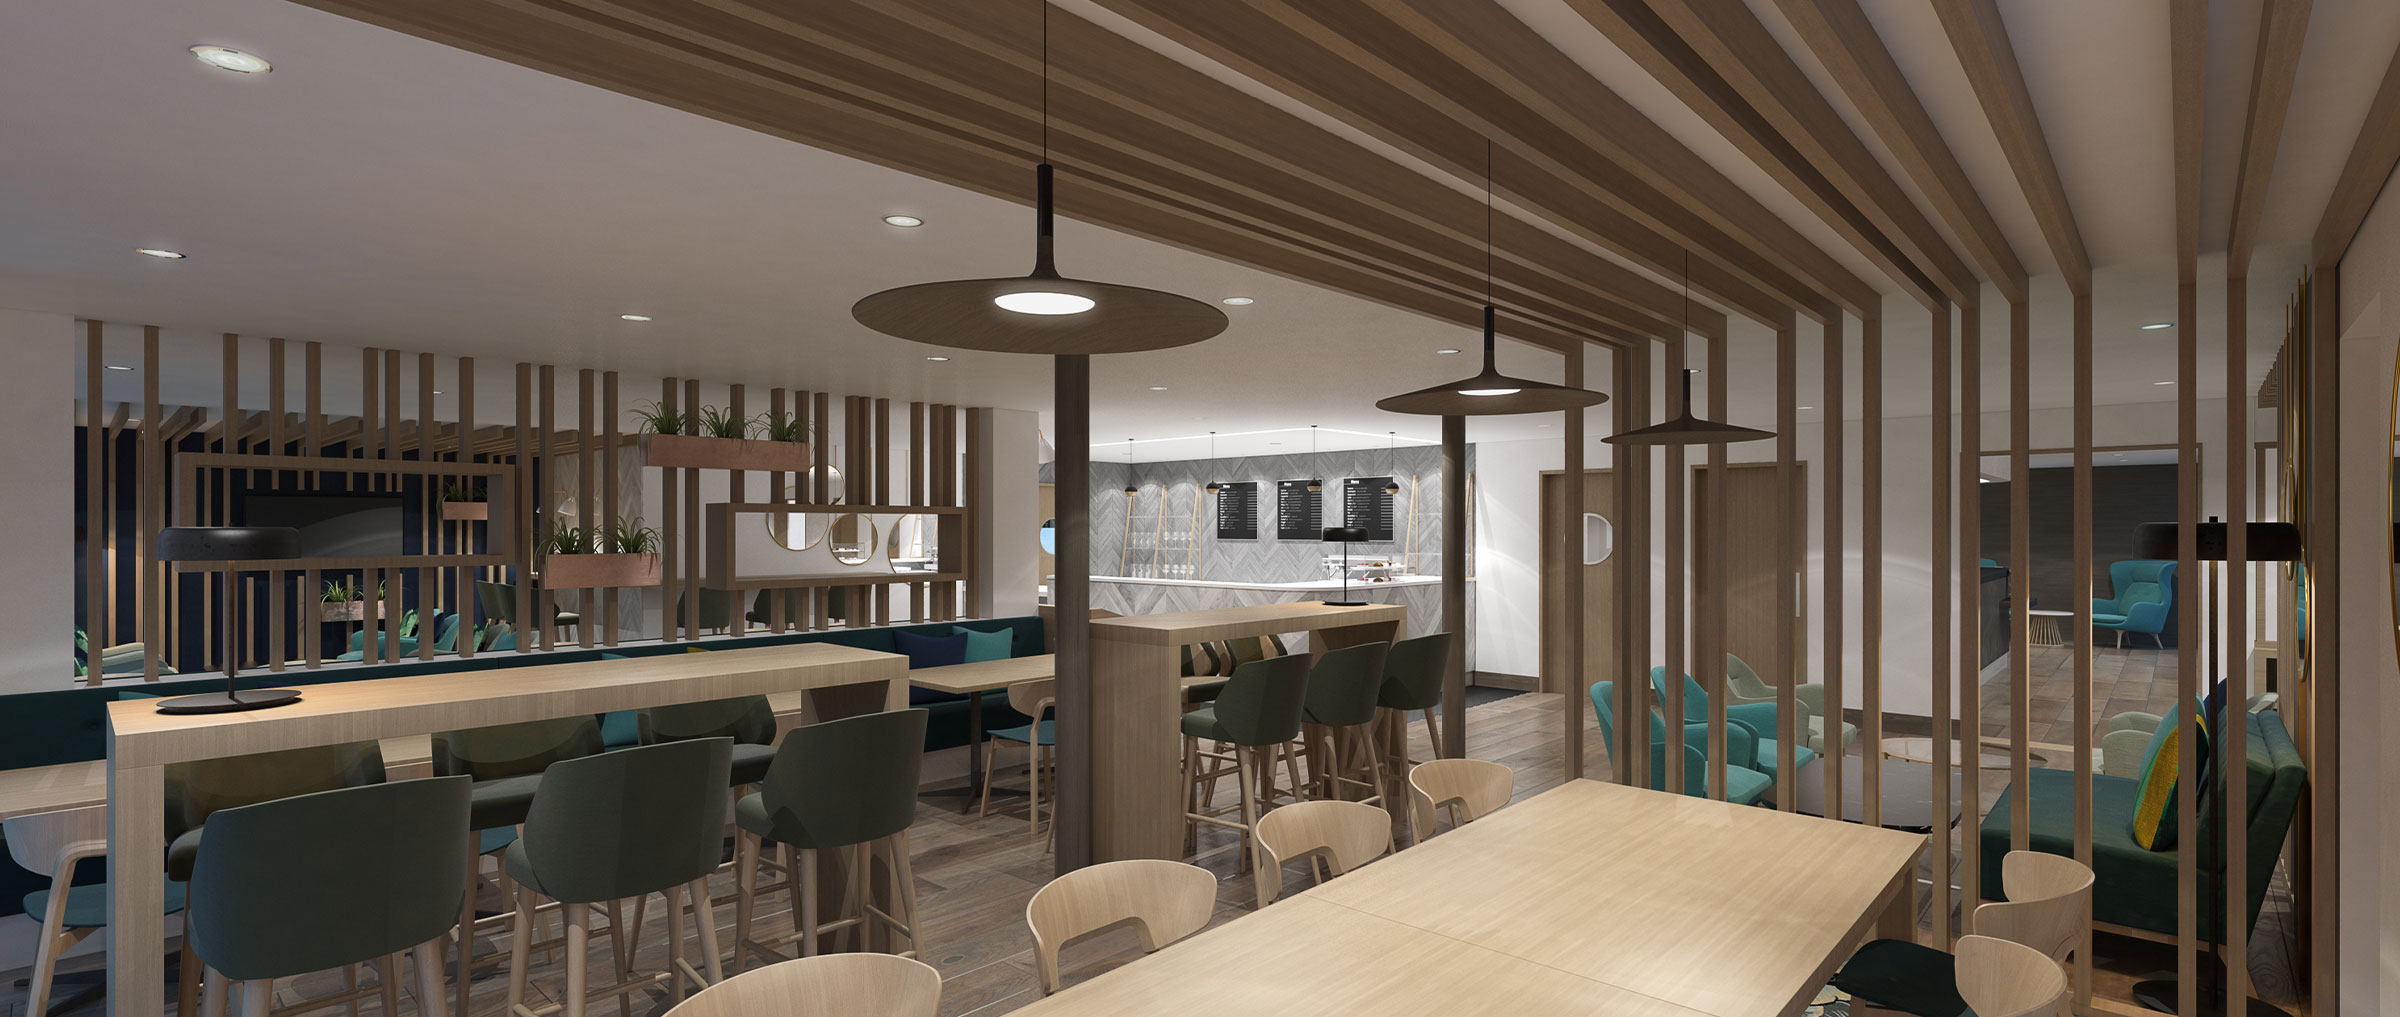 health club cafe interior design seating area with ceiling lights